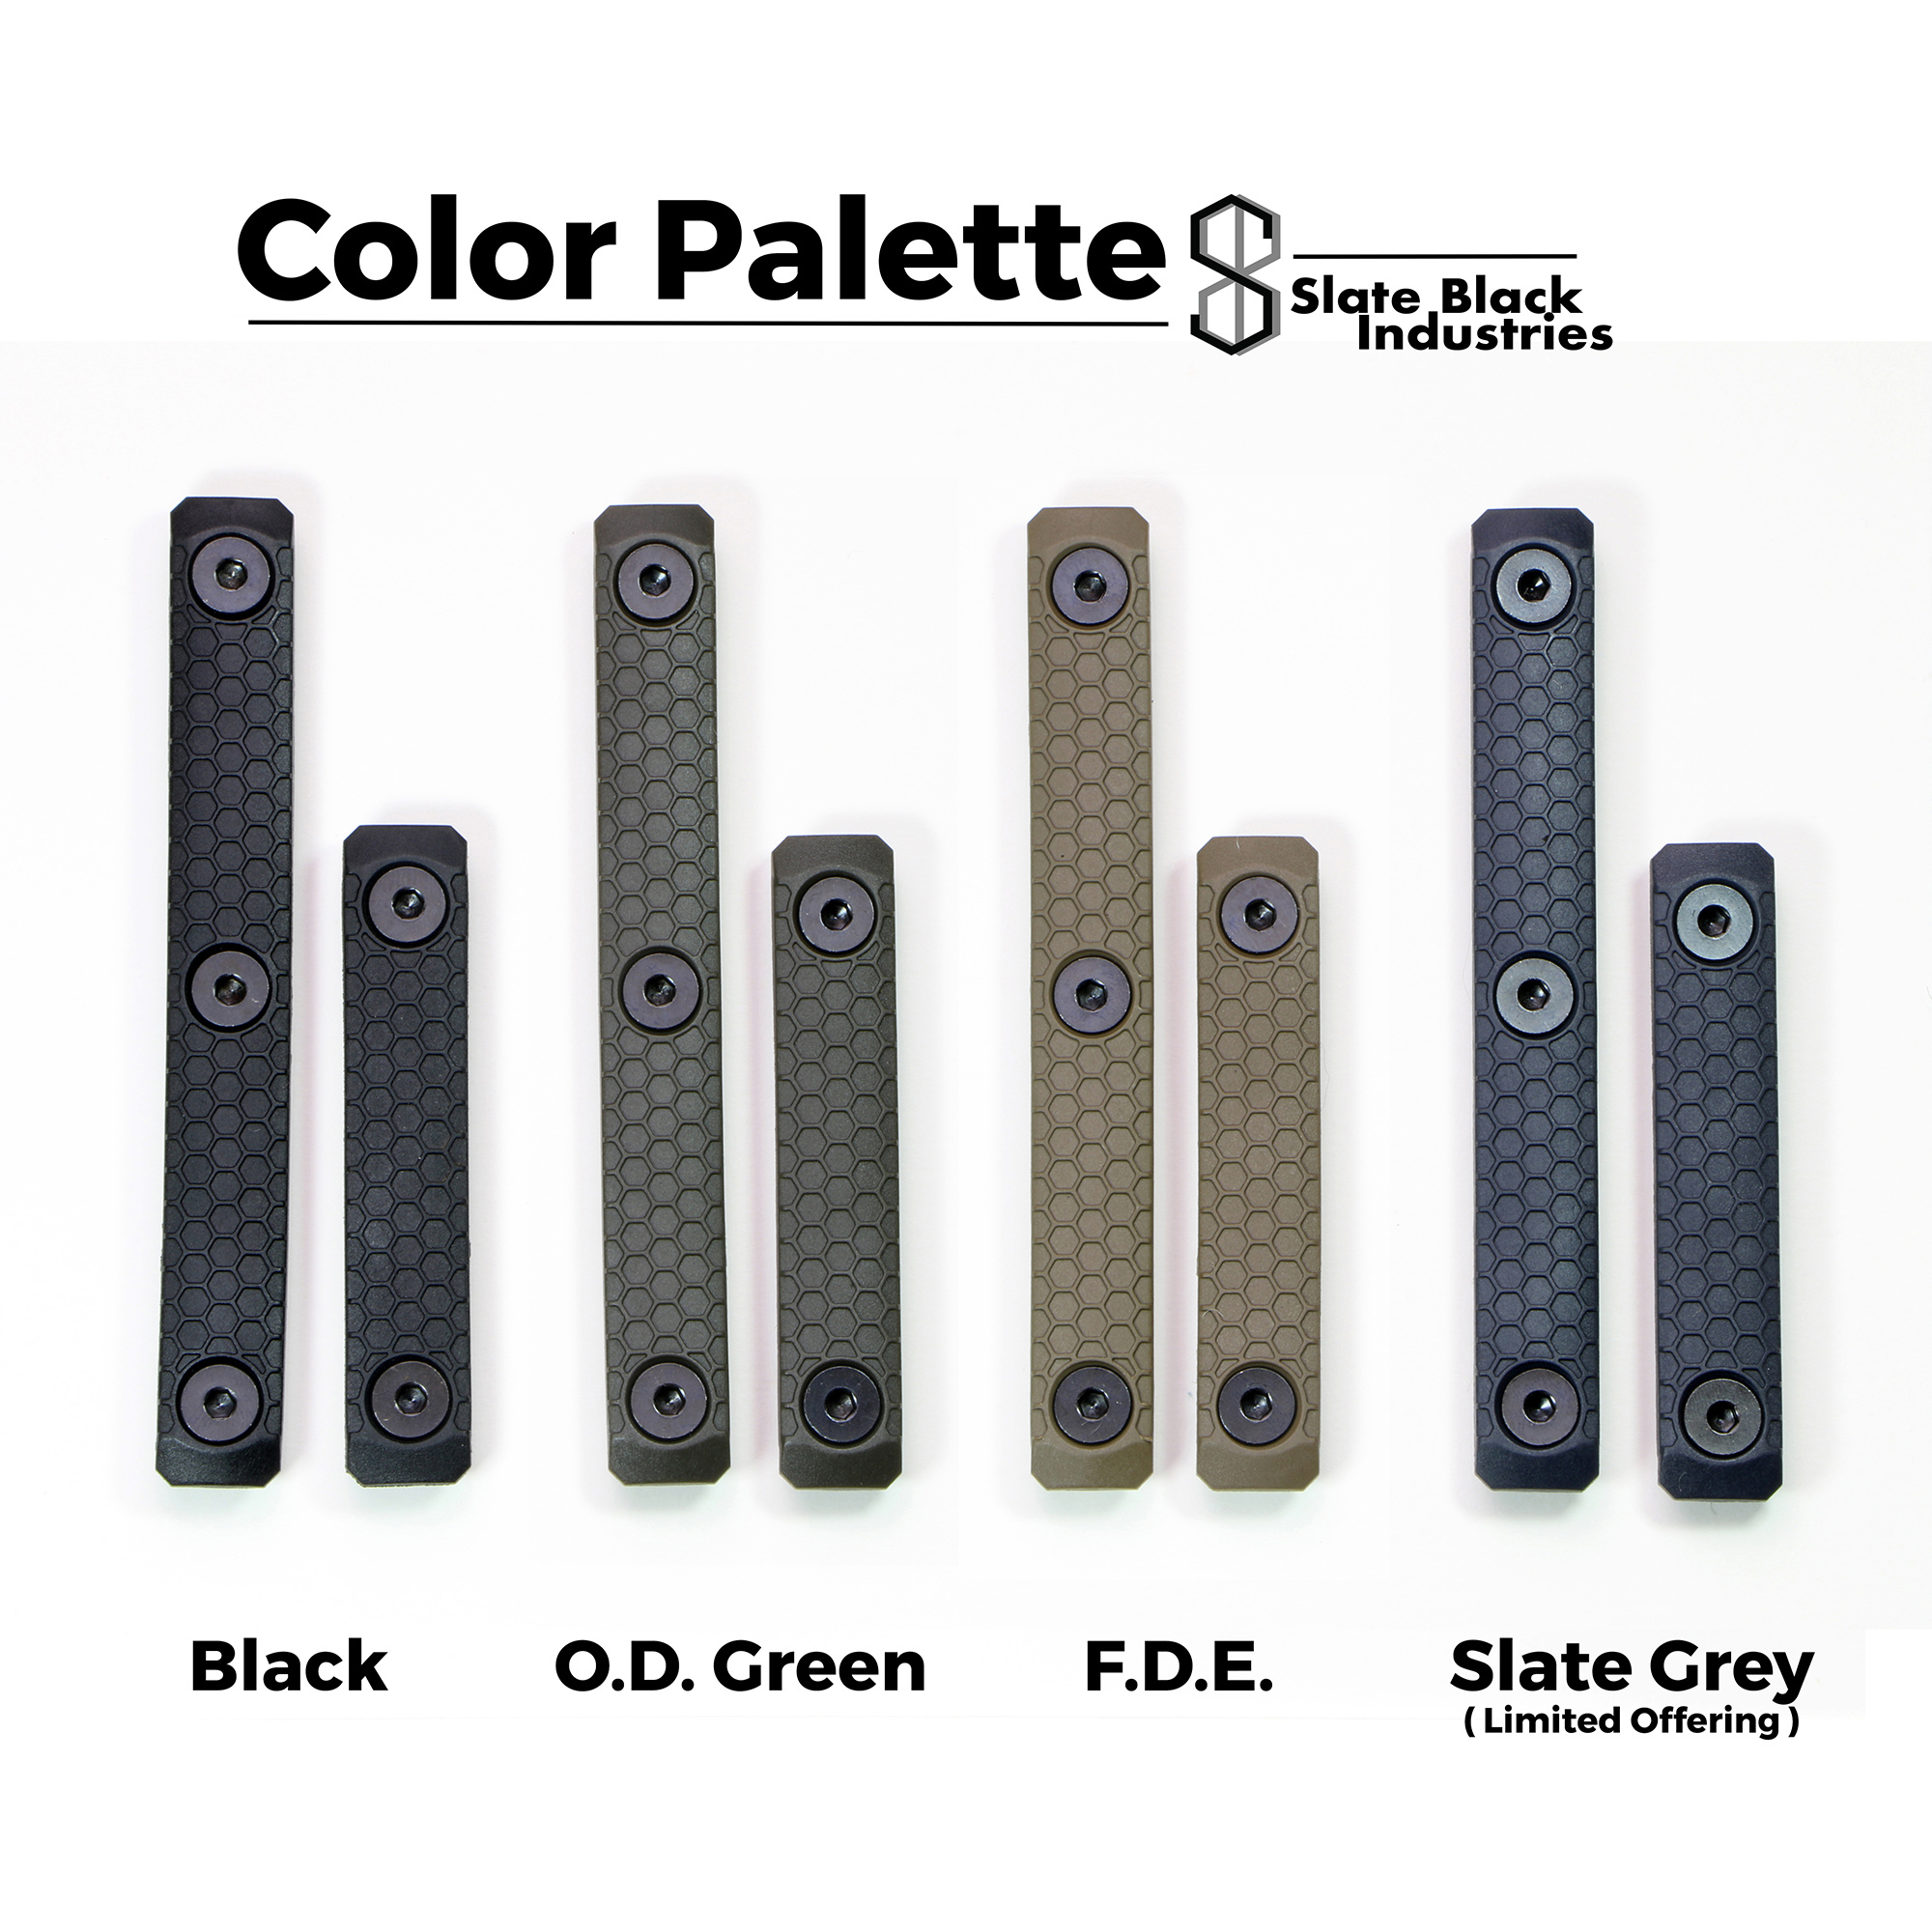 Slate Black Industries Slate Panels, 1-slot (Commercial 3-pack)